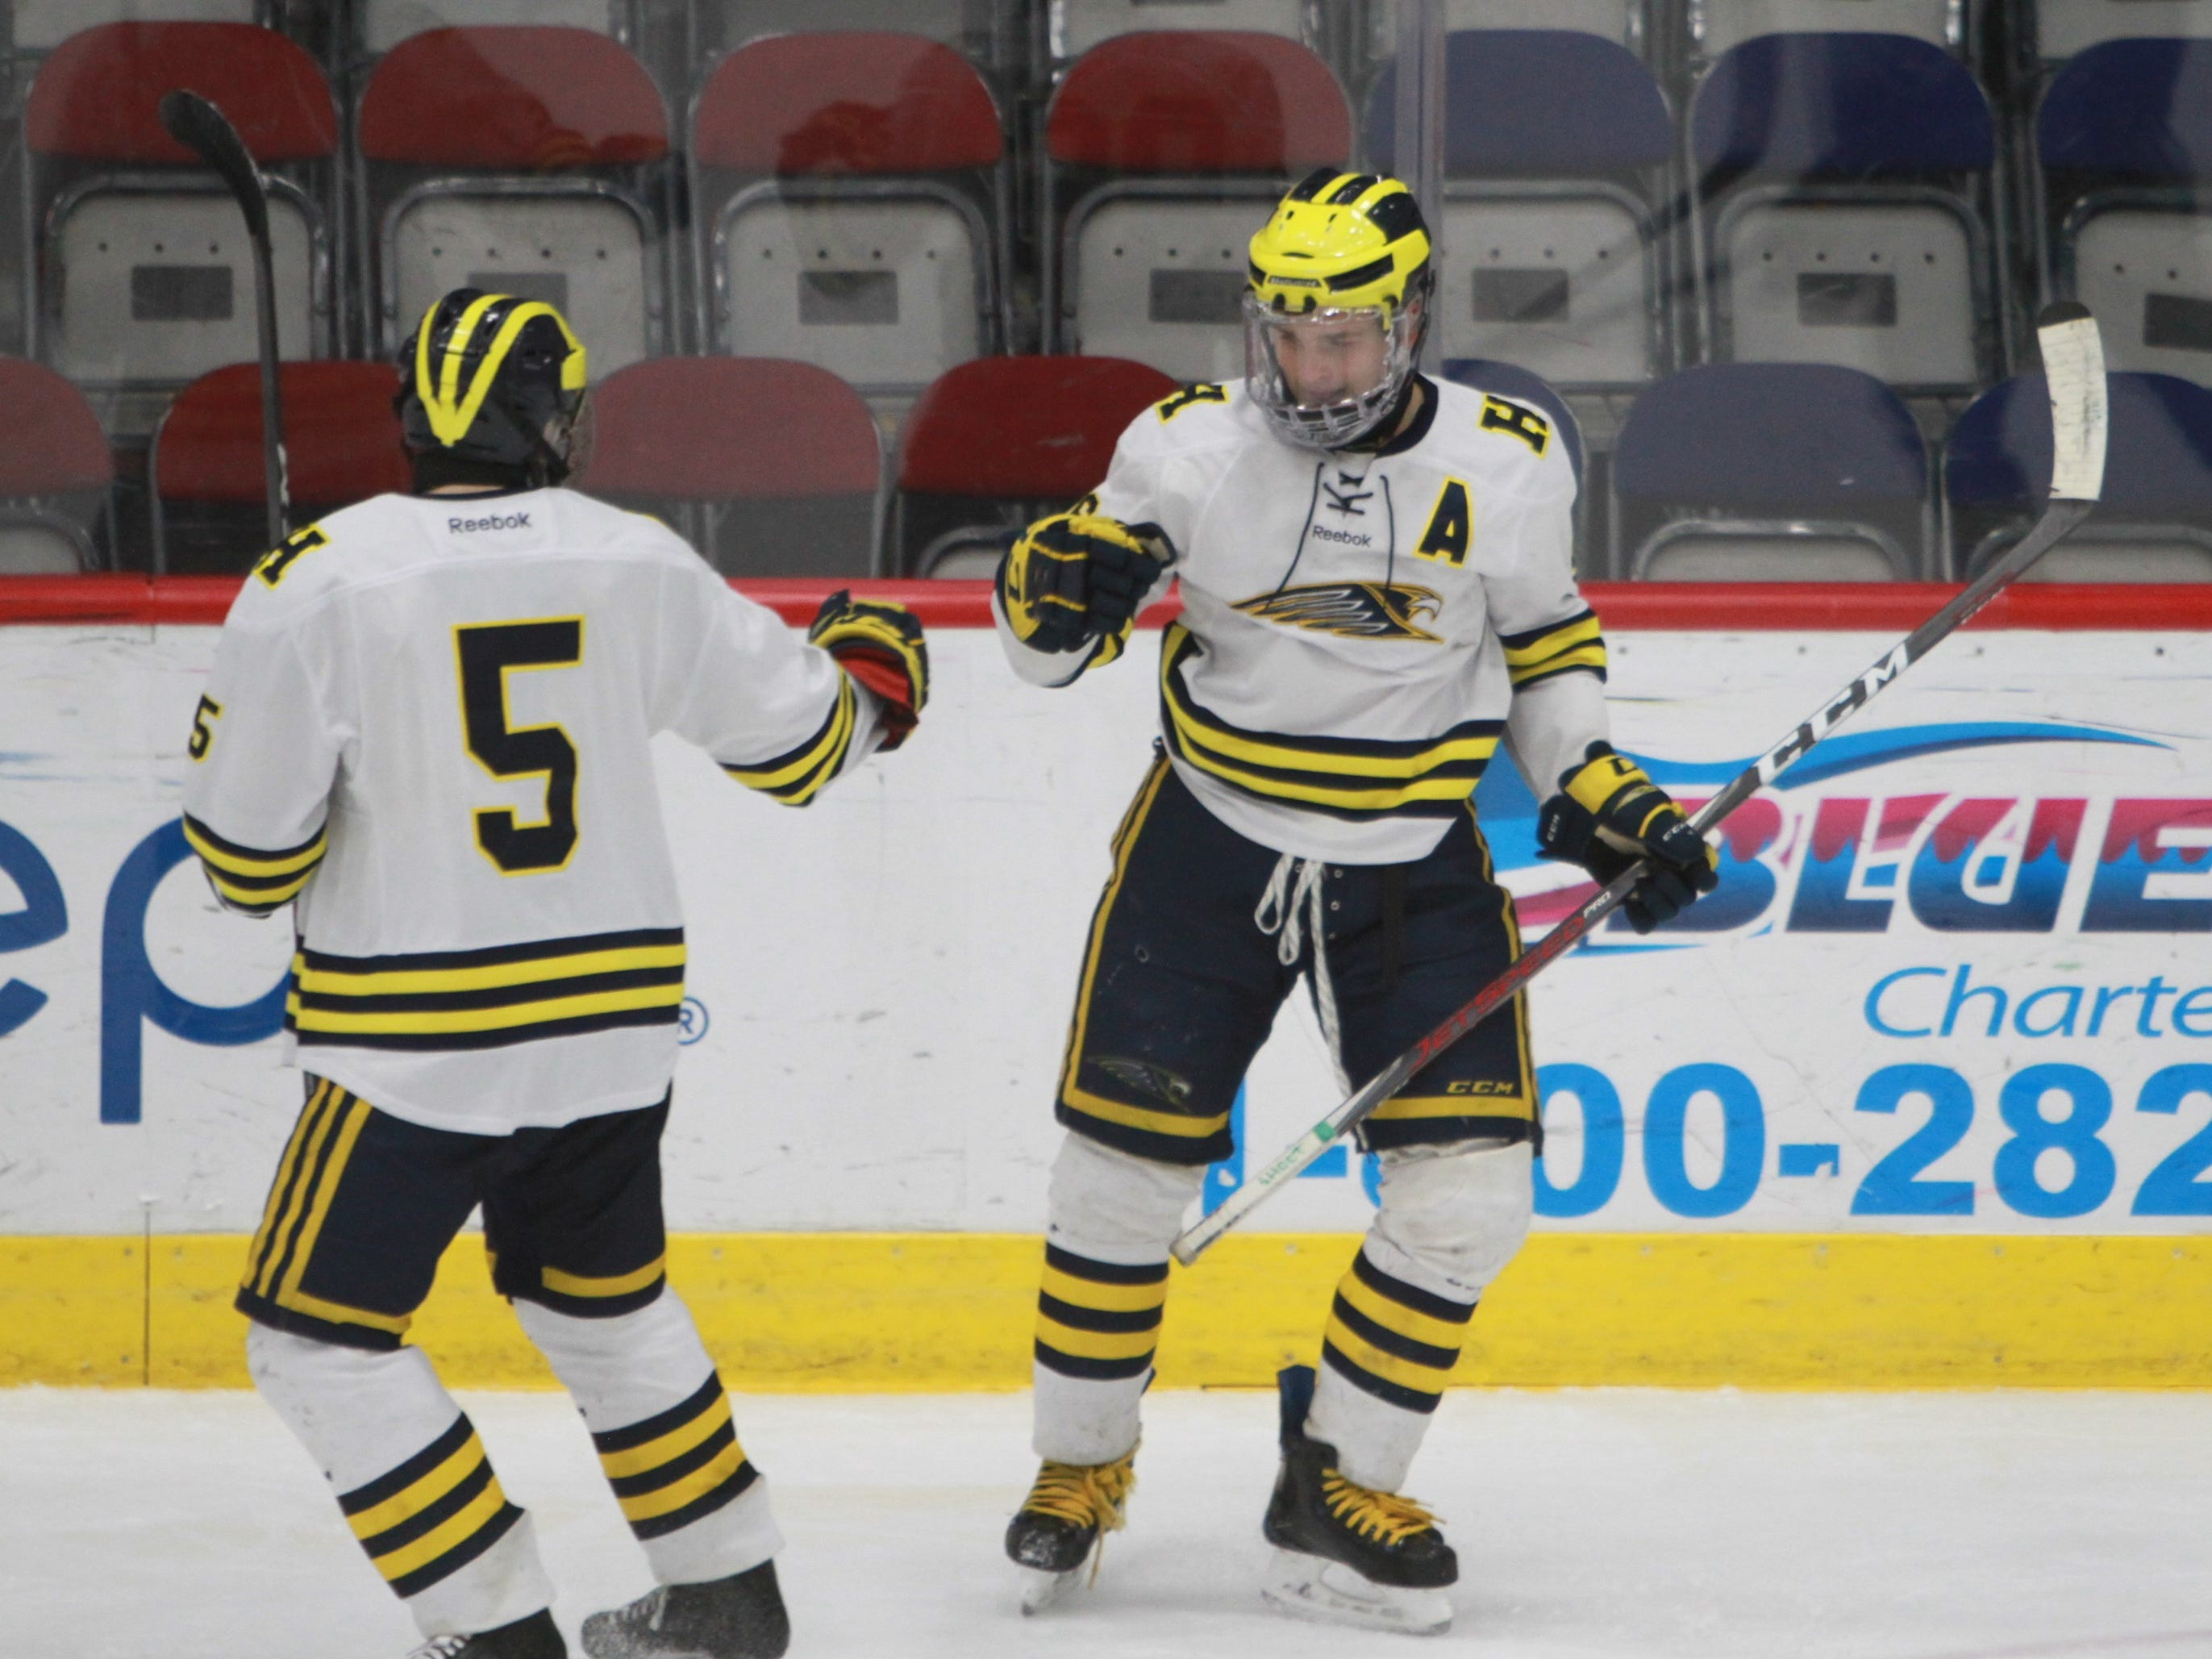 Hartland's Owen Pietila (right) celebrates his goal with Vlad Sarcevich, who drew the assist, during a 6-0 victory over Forest Hills Eastern in the state hockey quarterfinals on Tuesday, March 5, 2019.